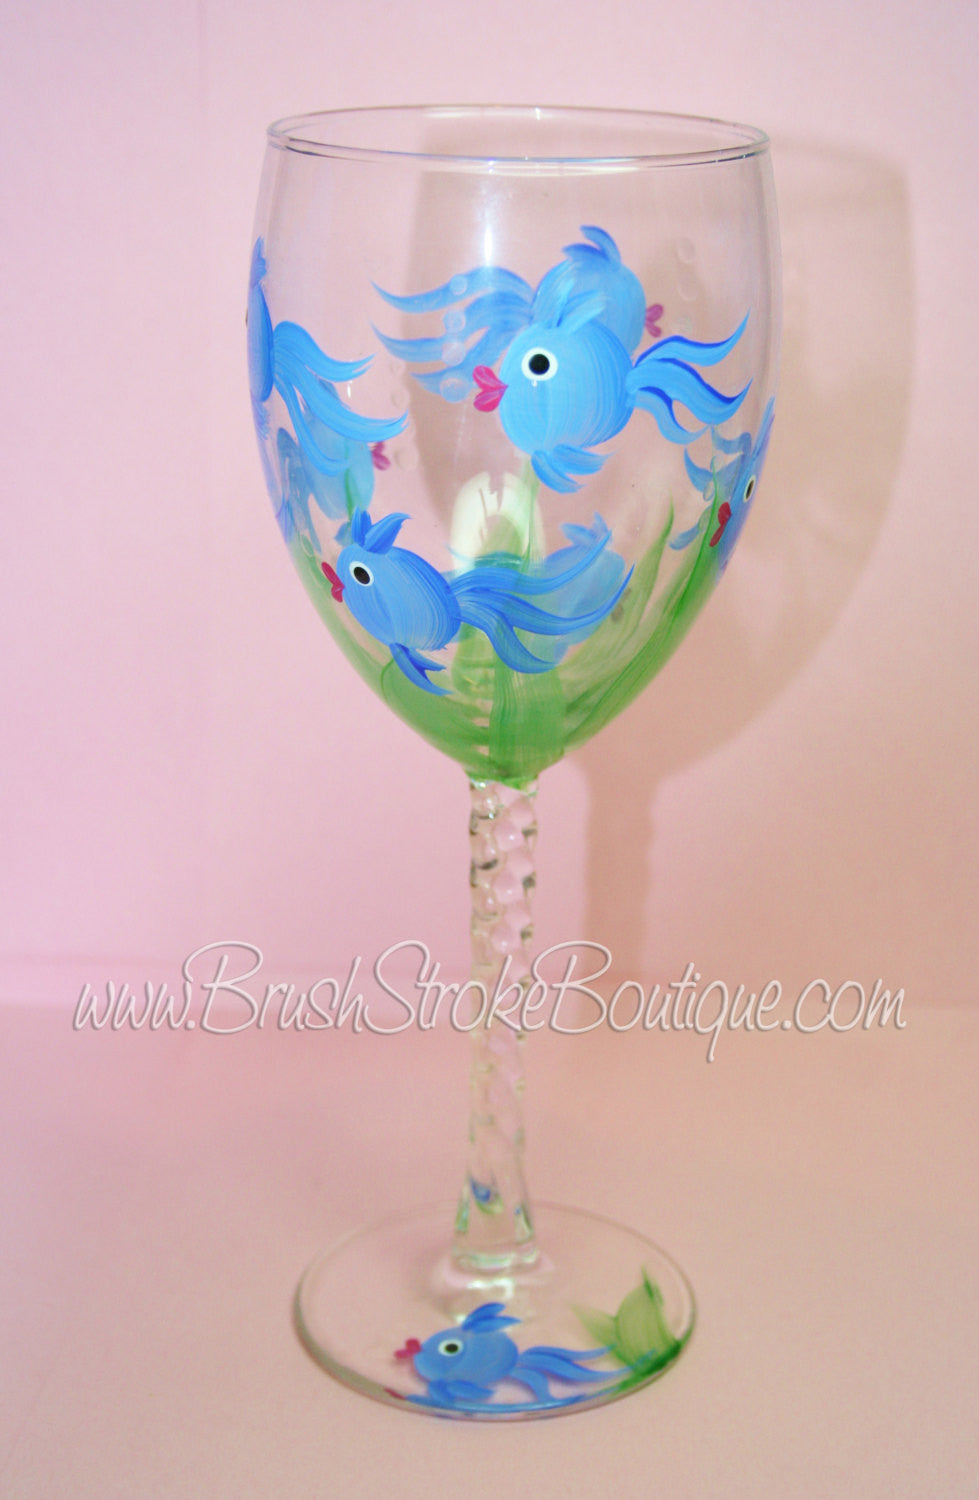 Hand Painted Wine Glass - Somethings Fishy - Original Designs by Cathy Kraemer